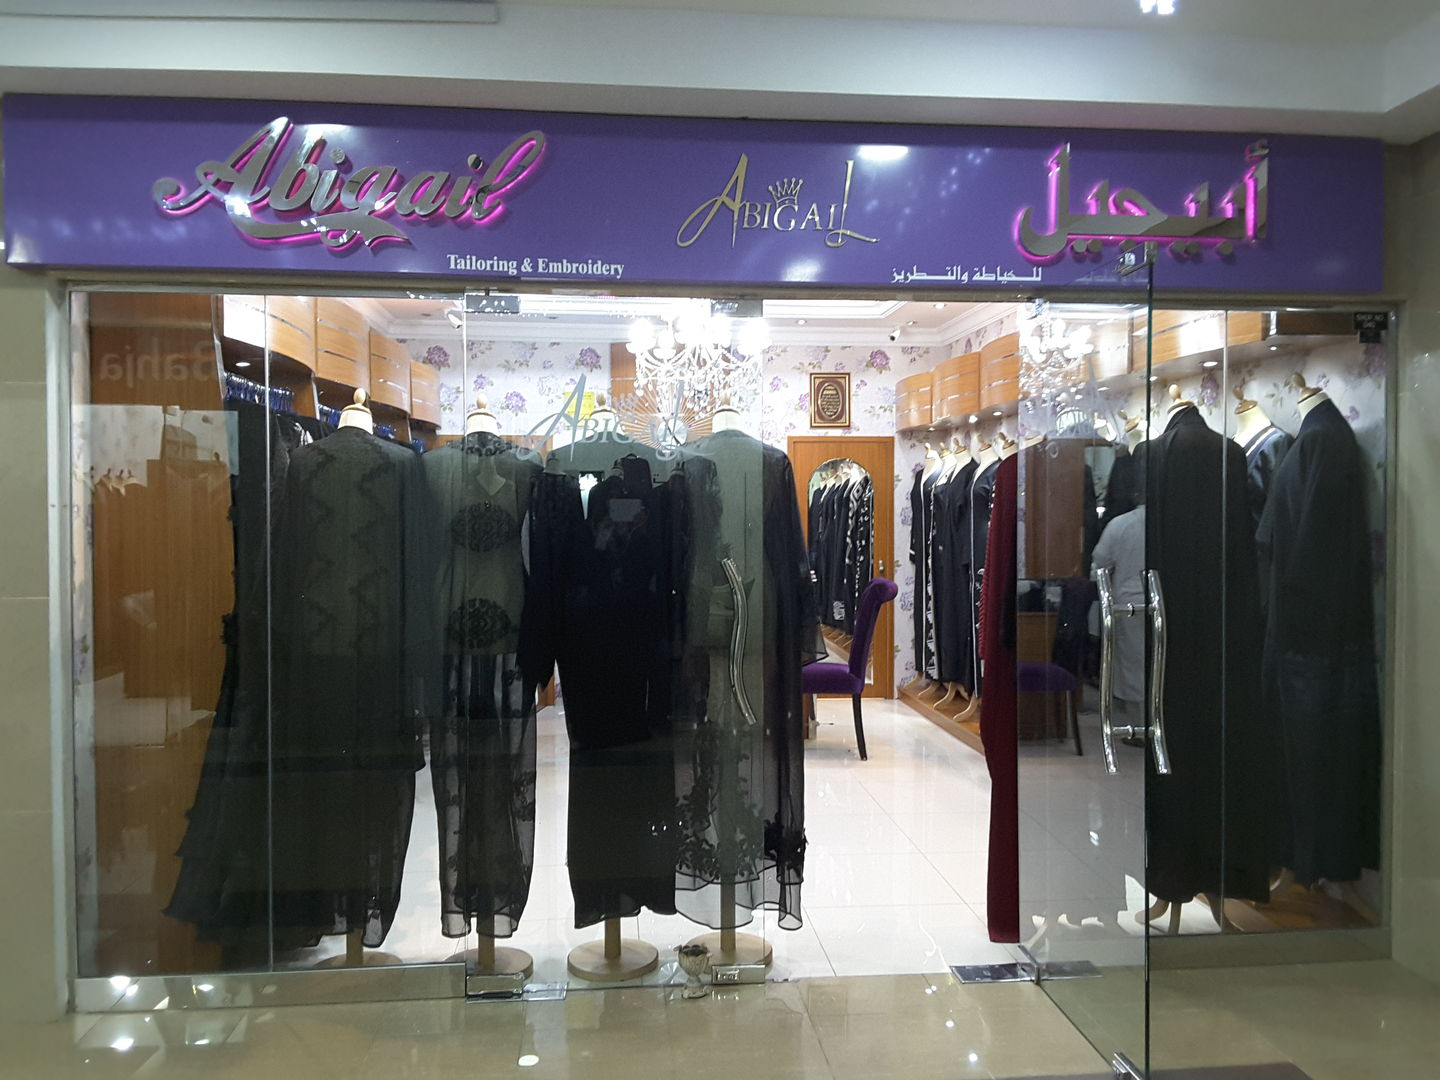 HiDubai-business-abigail-tailoring-embroidery-shopping-apparel-mirdif-dubai-2